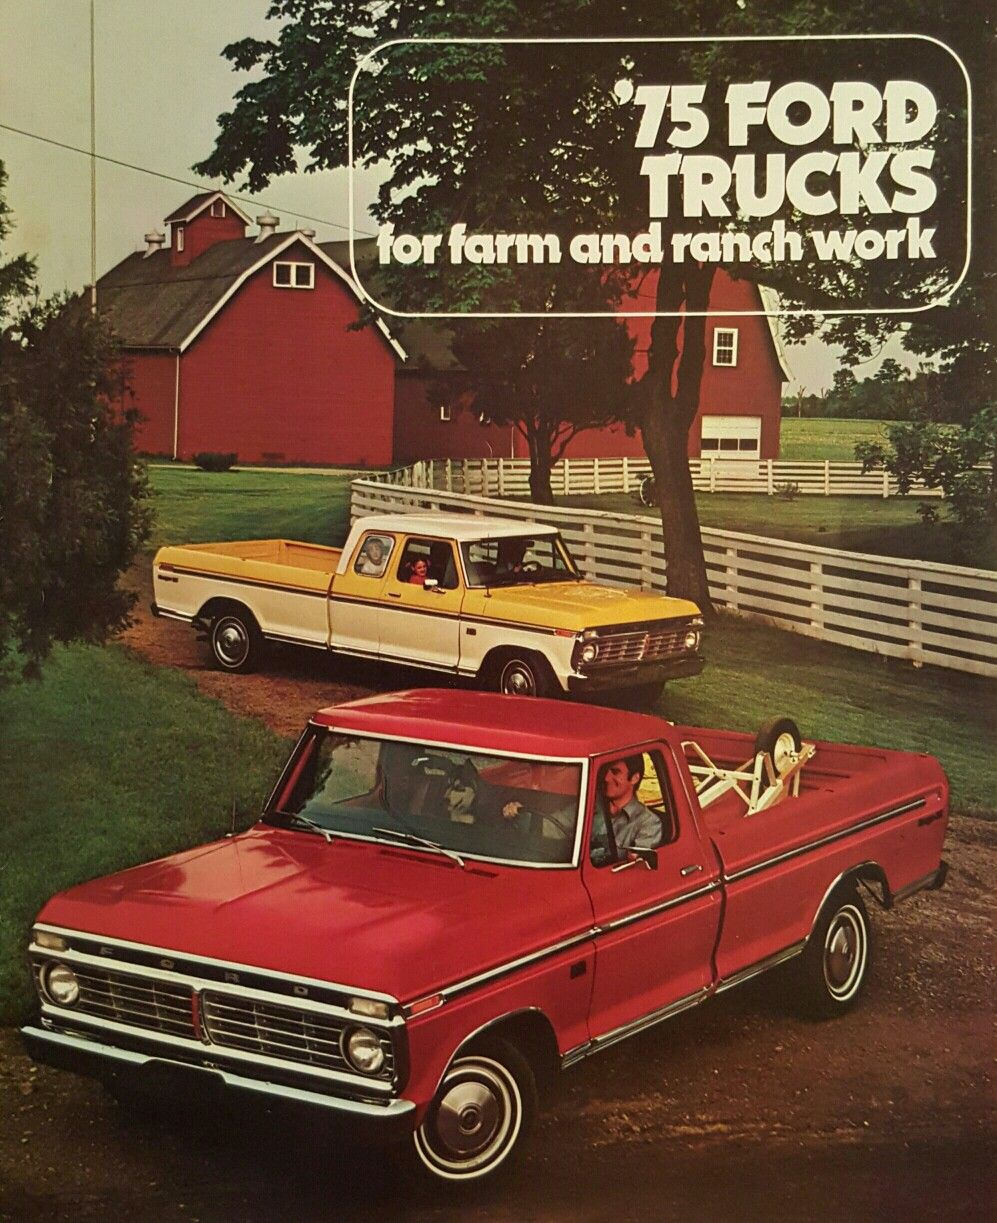 1975 Ford Farm and Ranch Truck Sales Brochure   Cars and Trucks ...